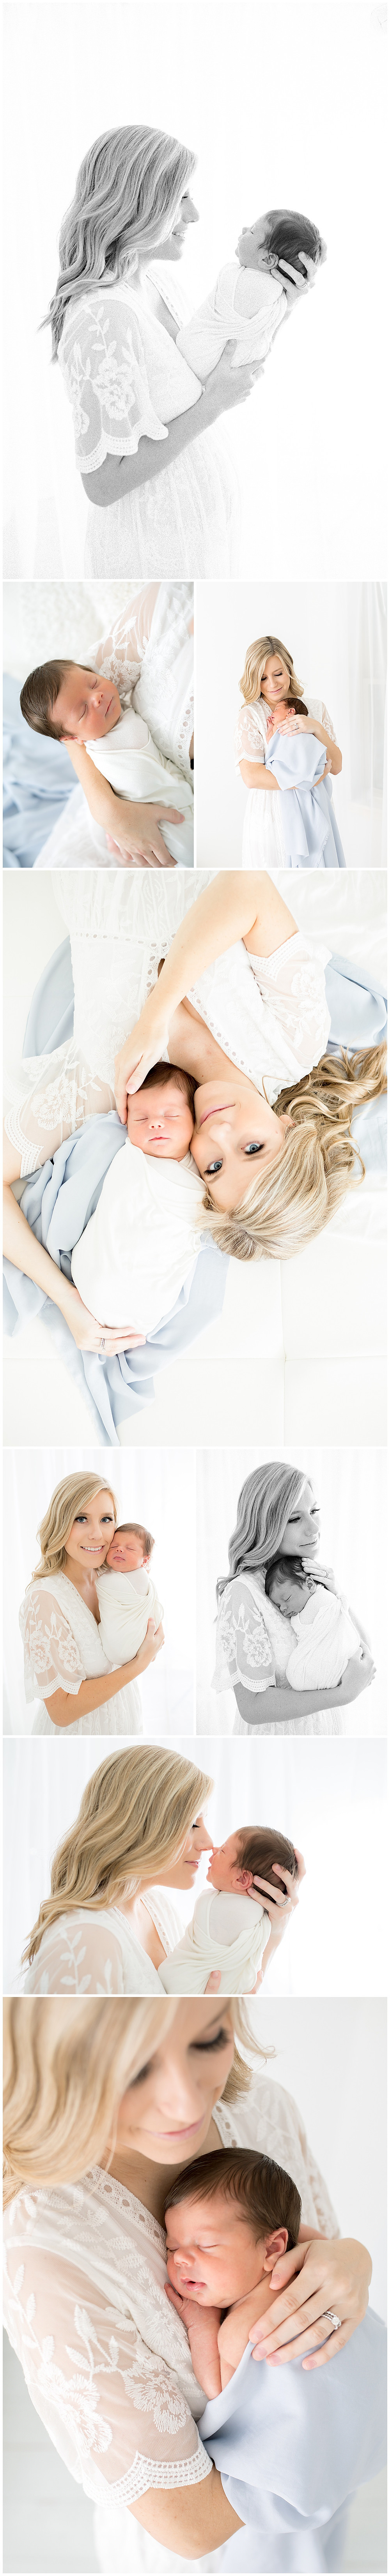 motherhood portraits in white studio